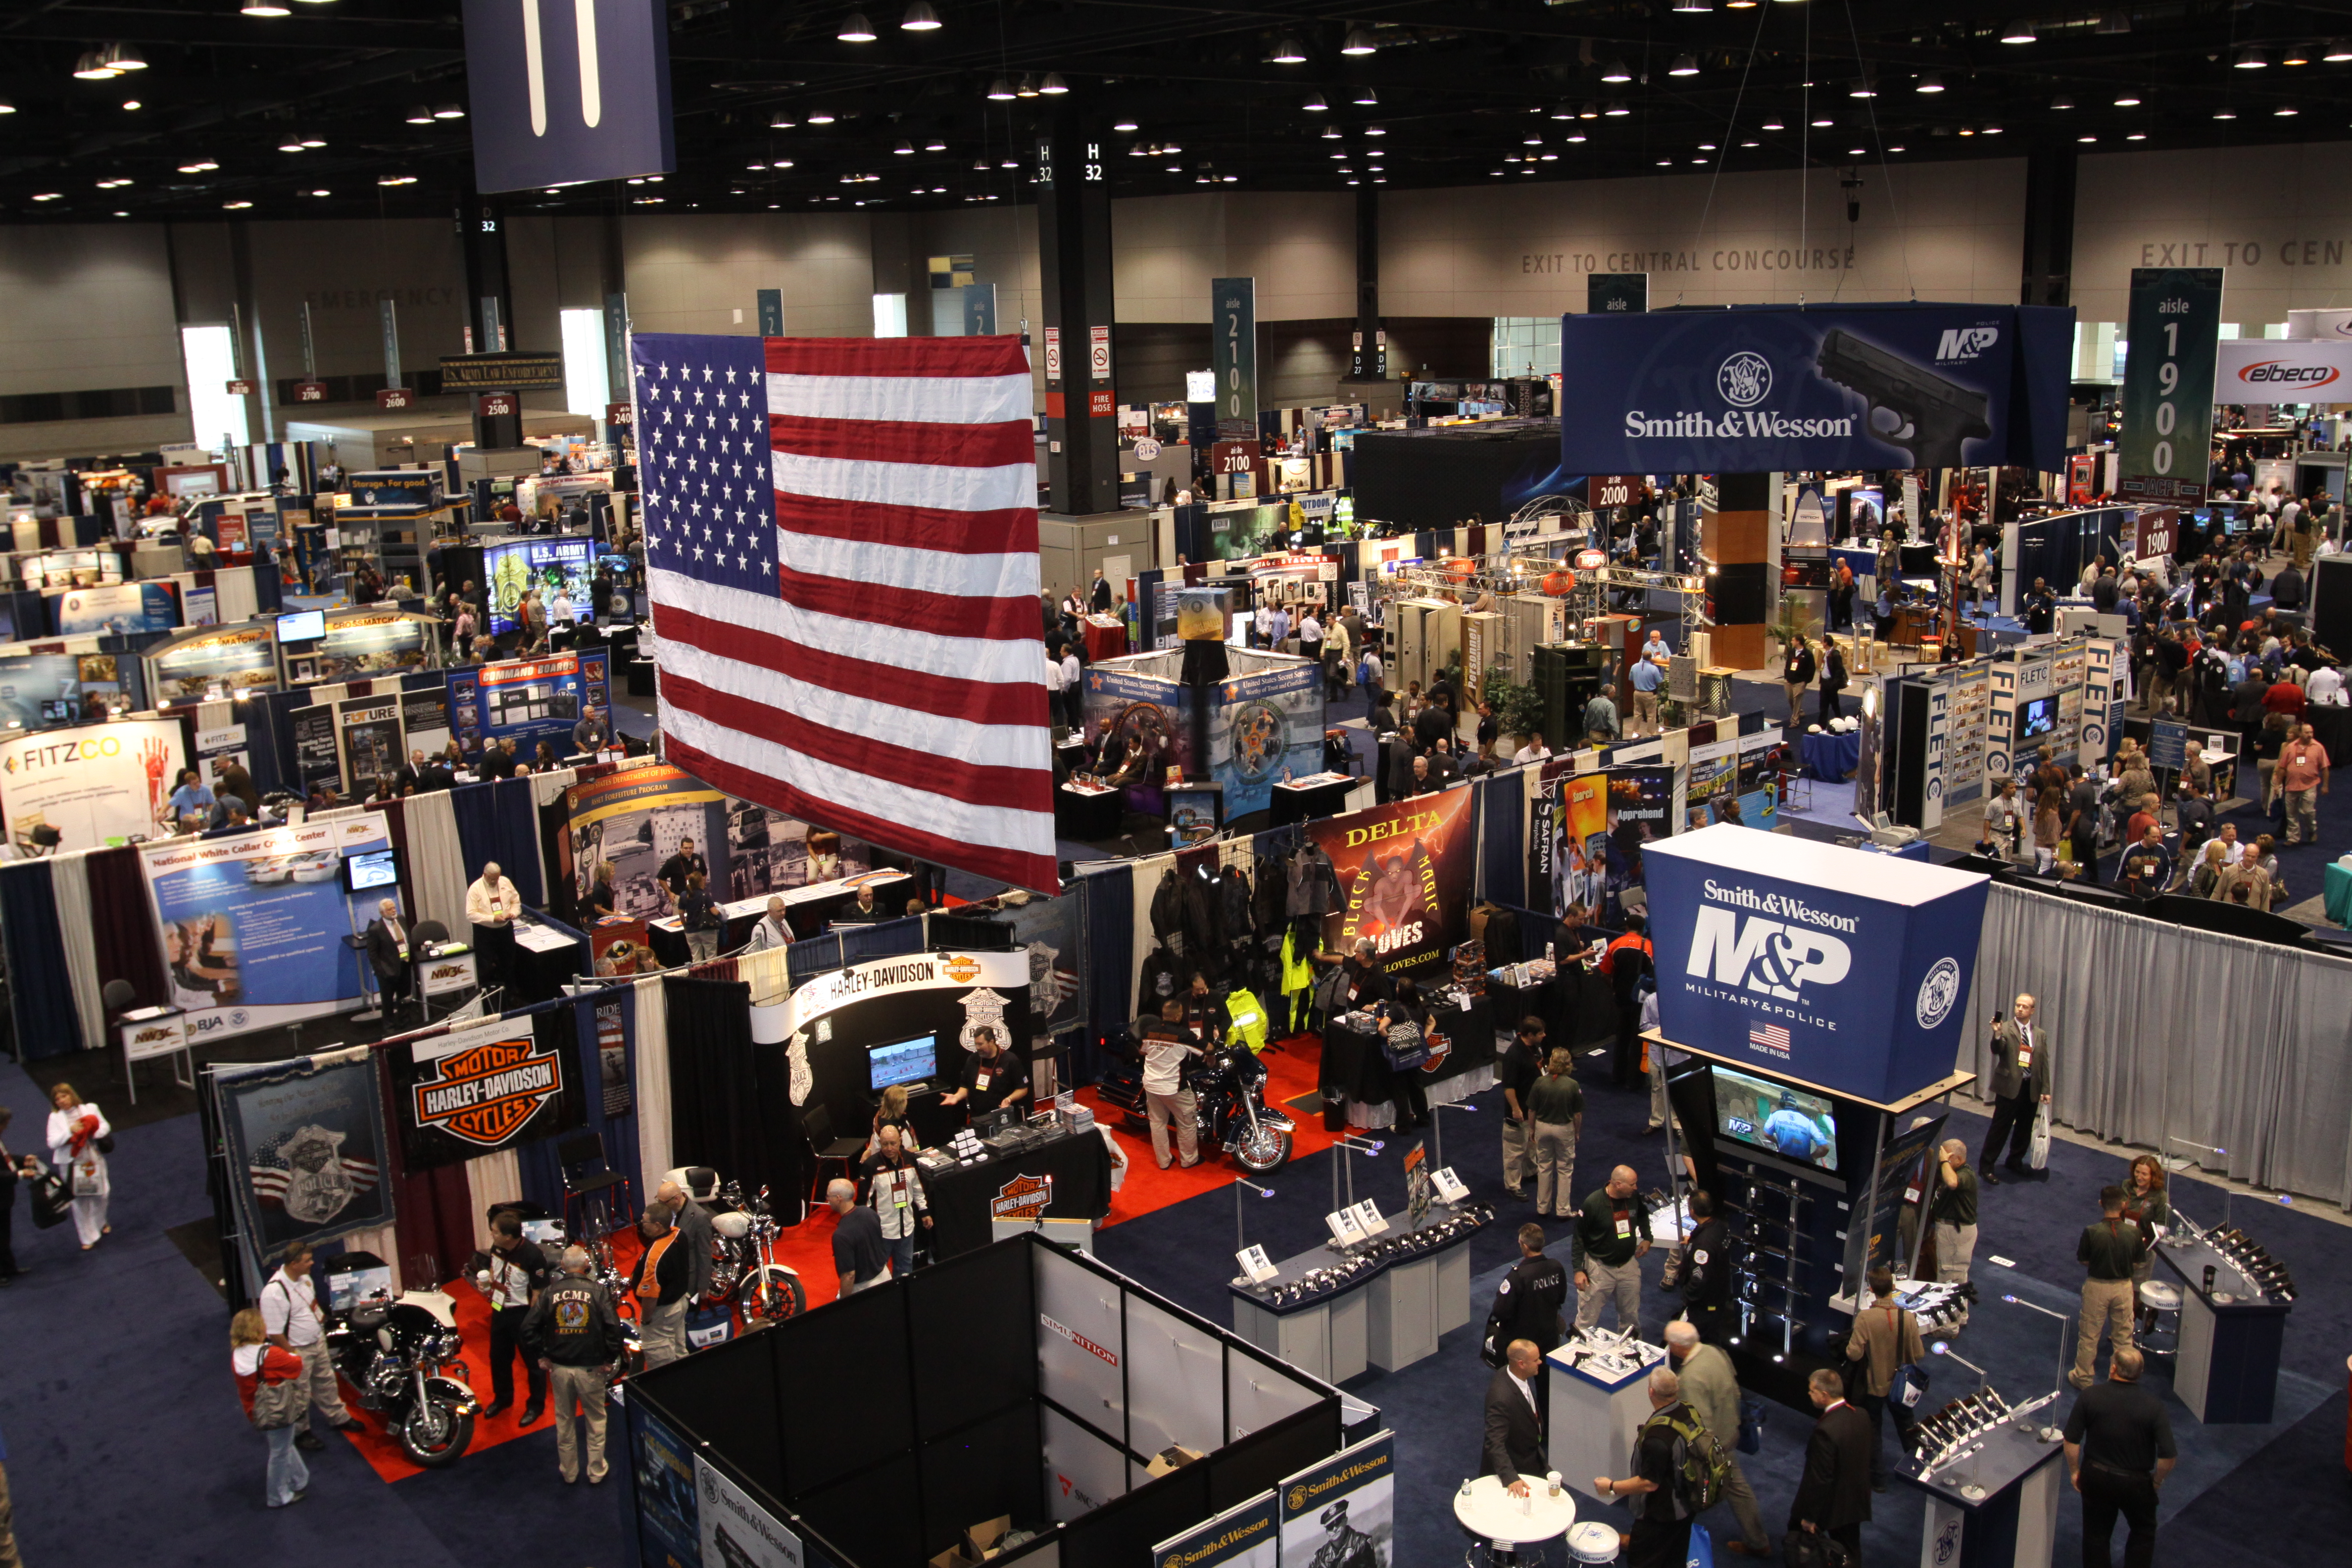 Buy Your Booth at IACP 2012   IACP Blog